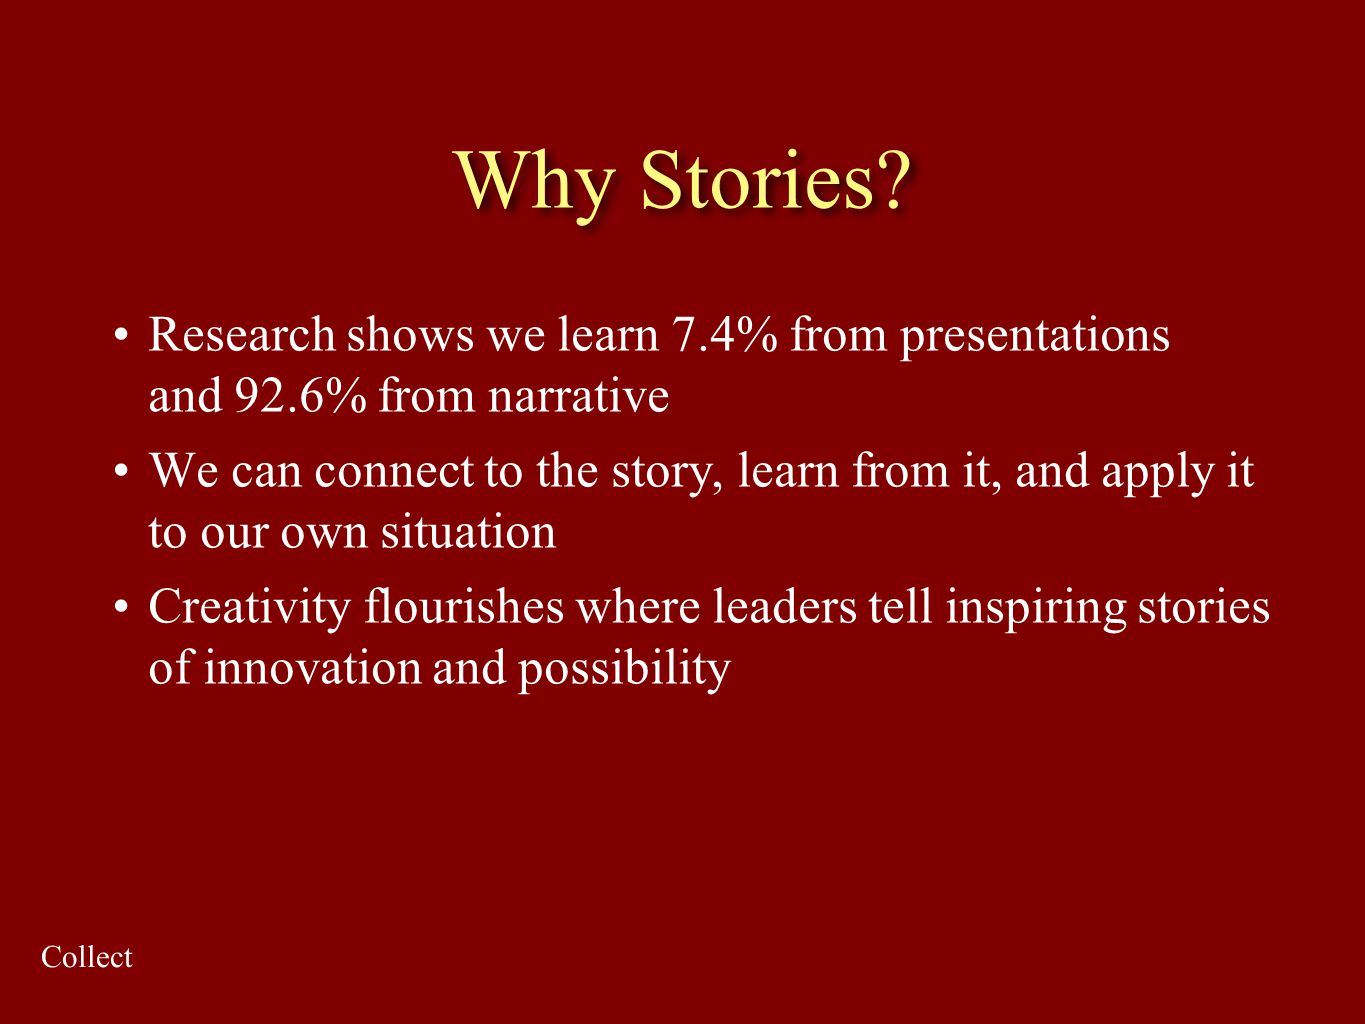 Why Stories Research shows we learn 7.4% from presentations and 92.6% from narrative.